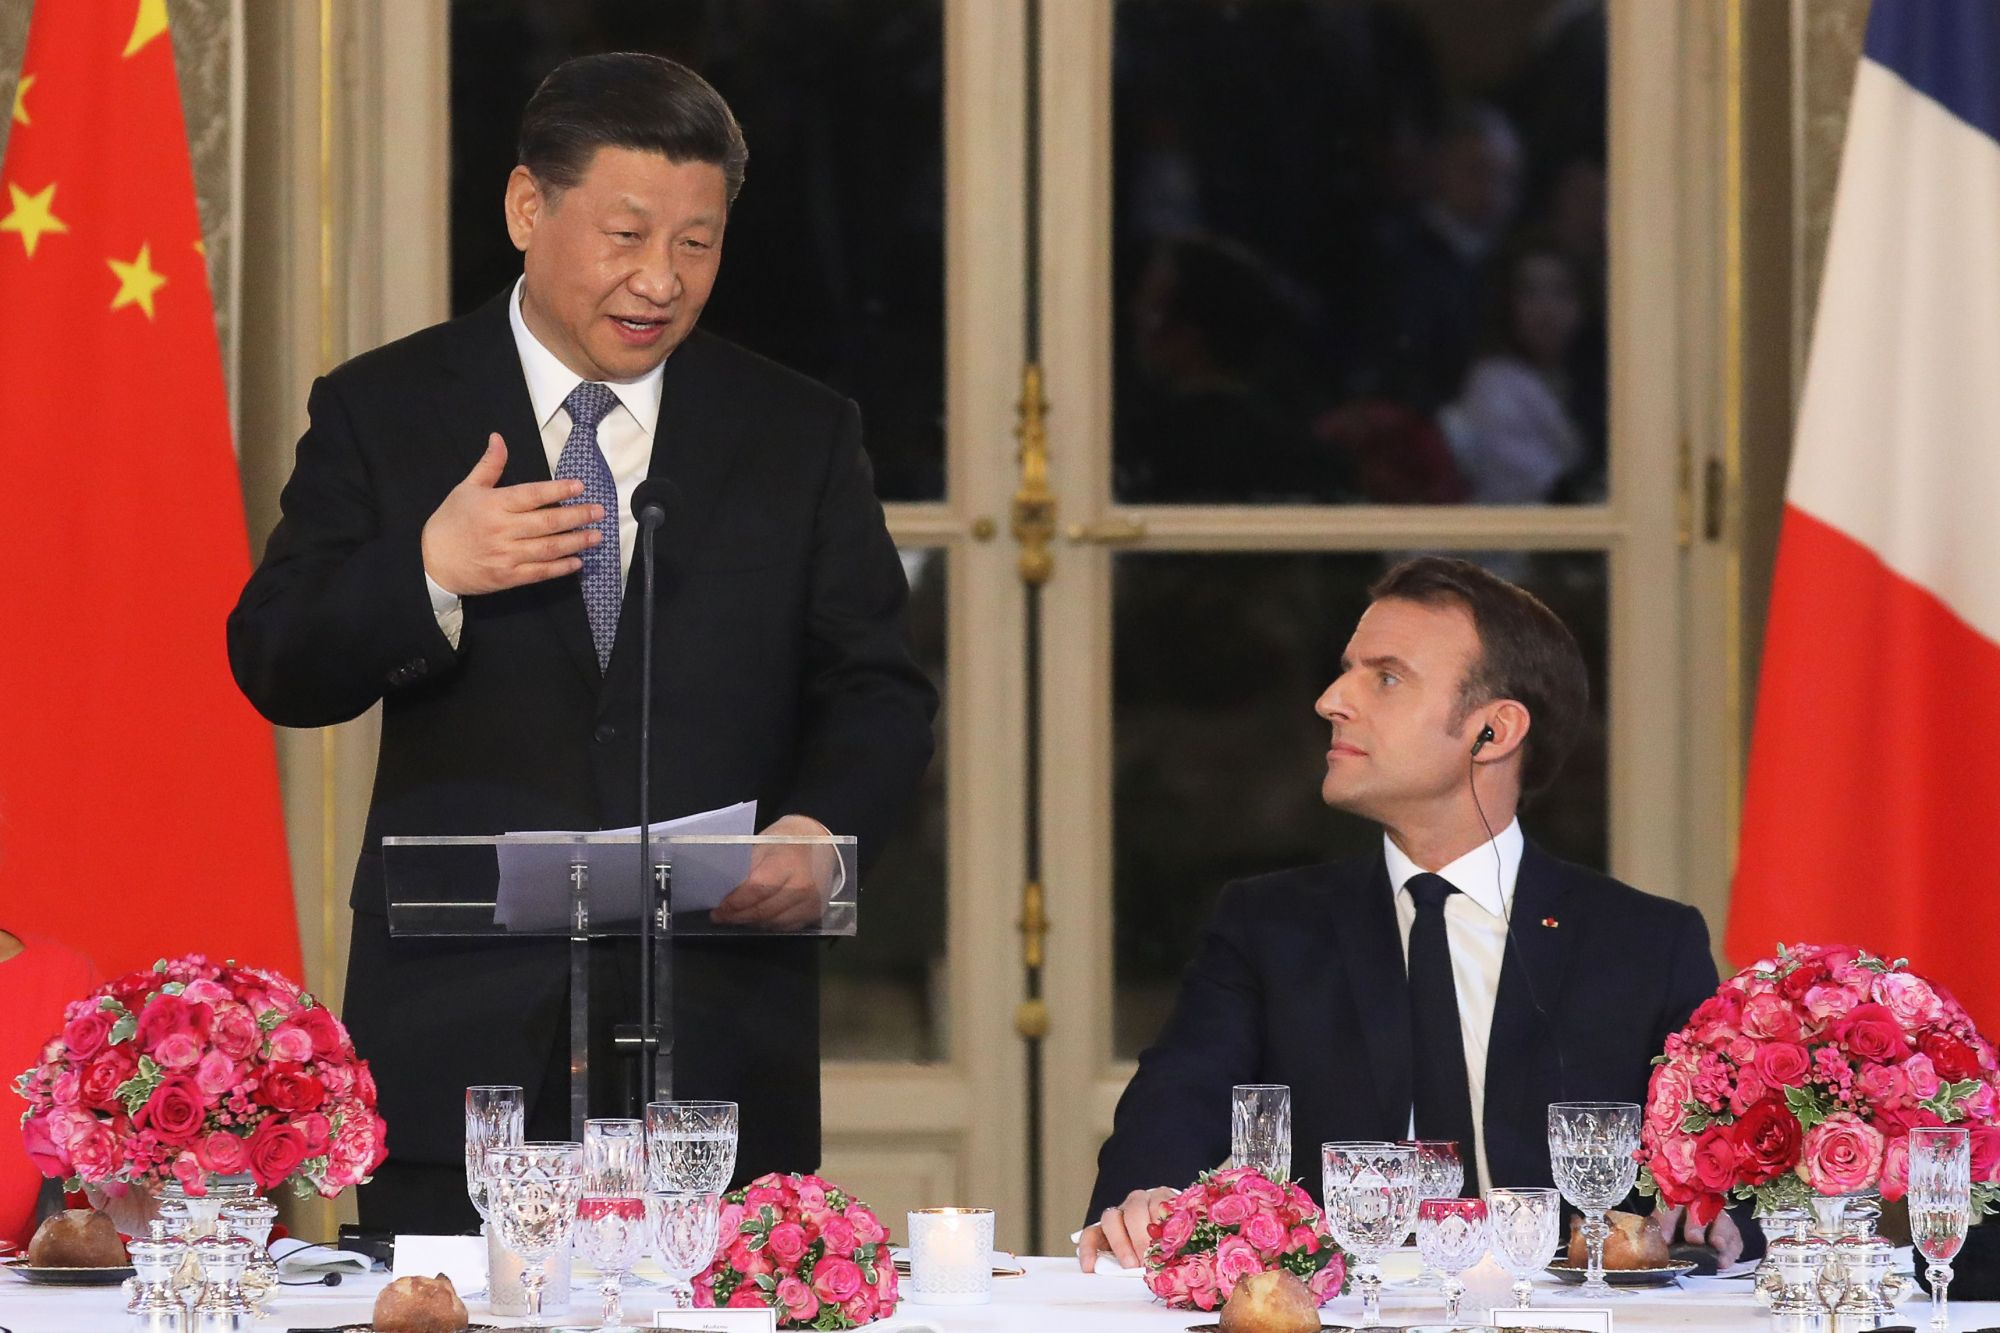 Chinese President Xi Jinping speaks flanked by French President Emmanuel Macron during a state dinner at the Elysee Palace in Paris Monday as part of a Chinese state visit to France. | AFP-JIJI